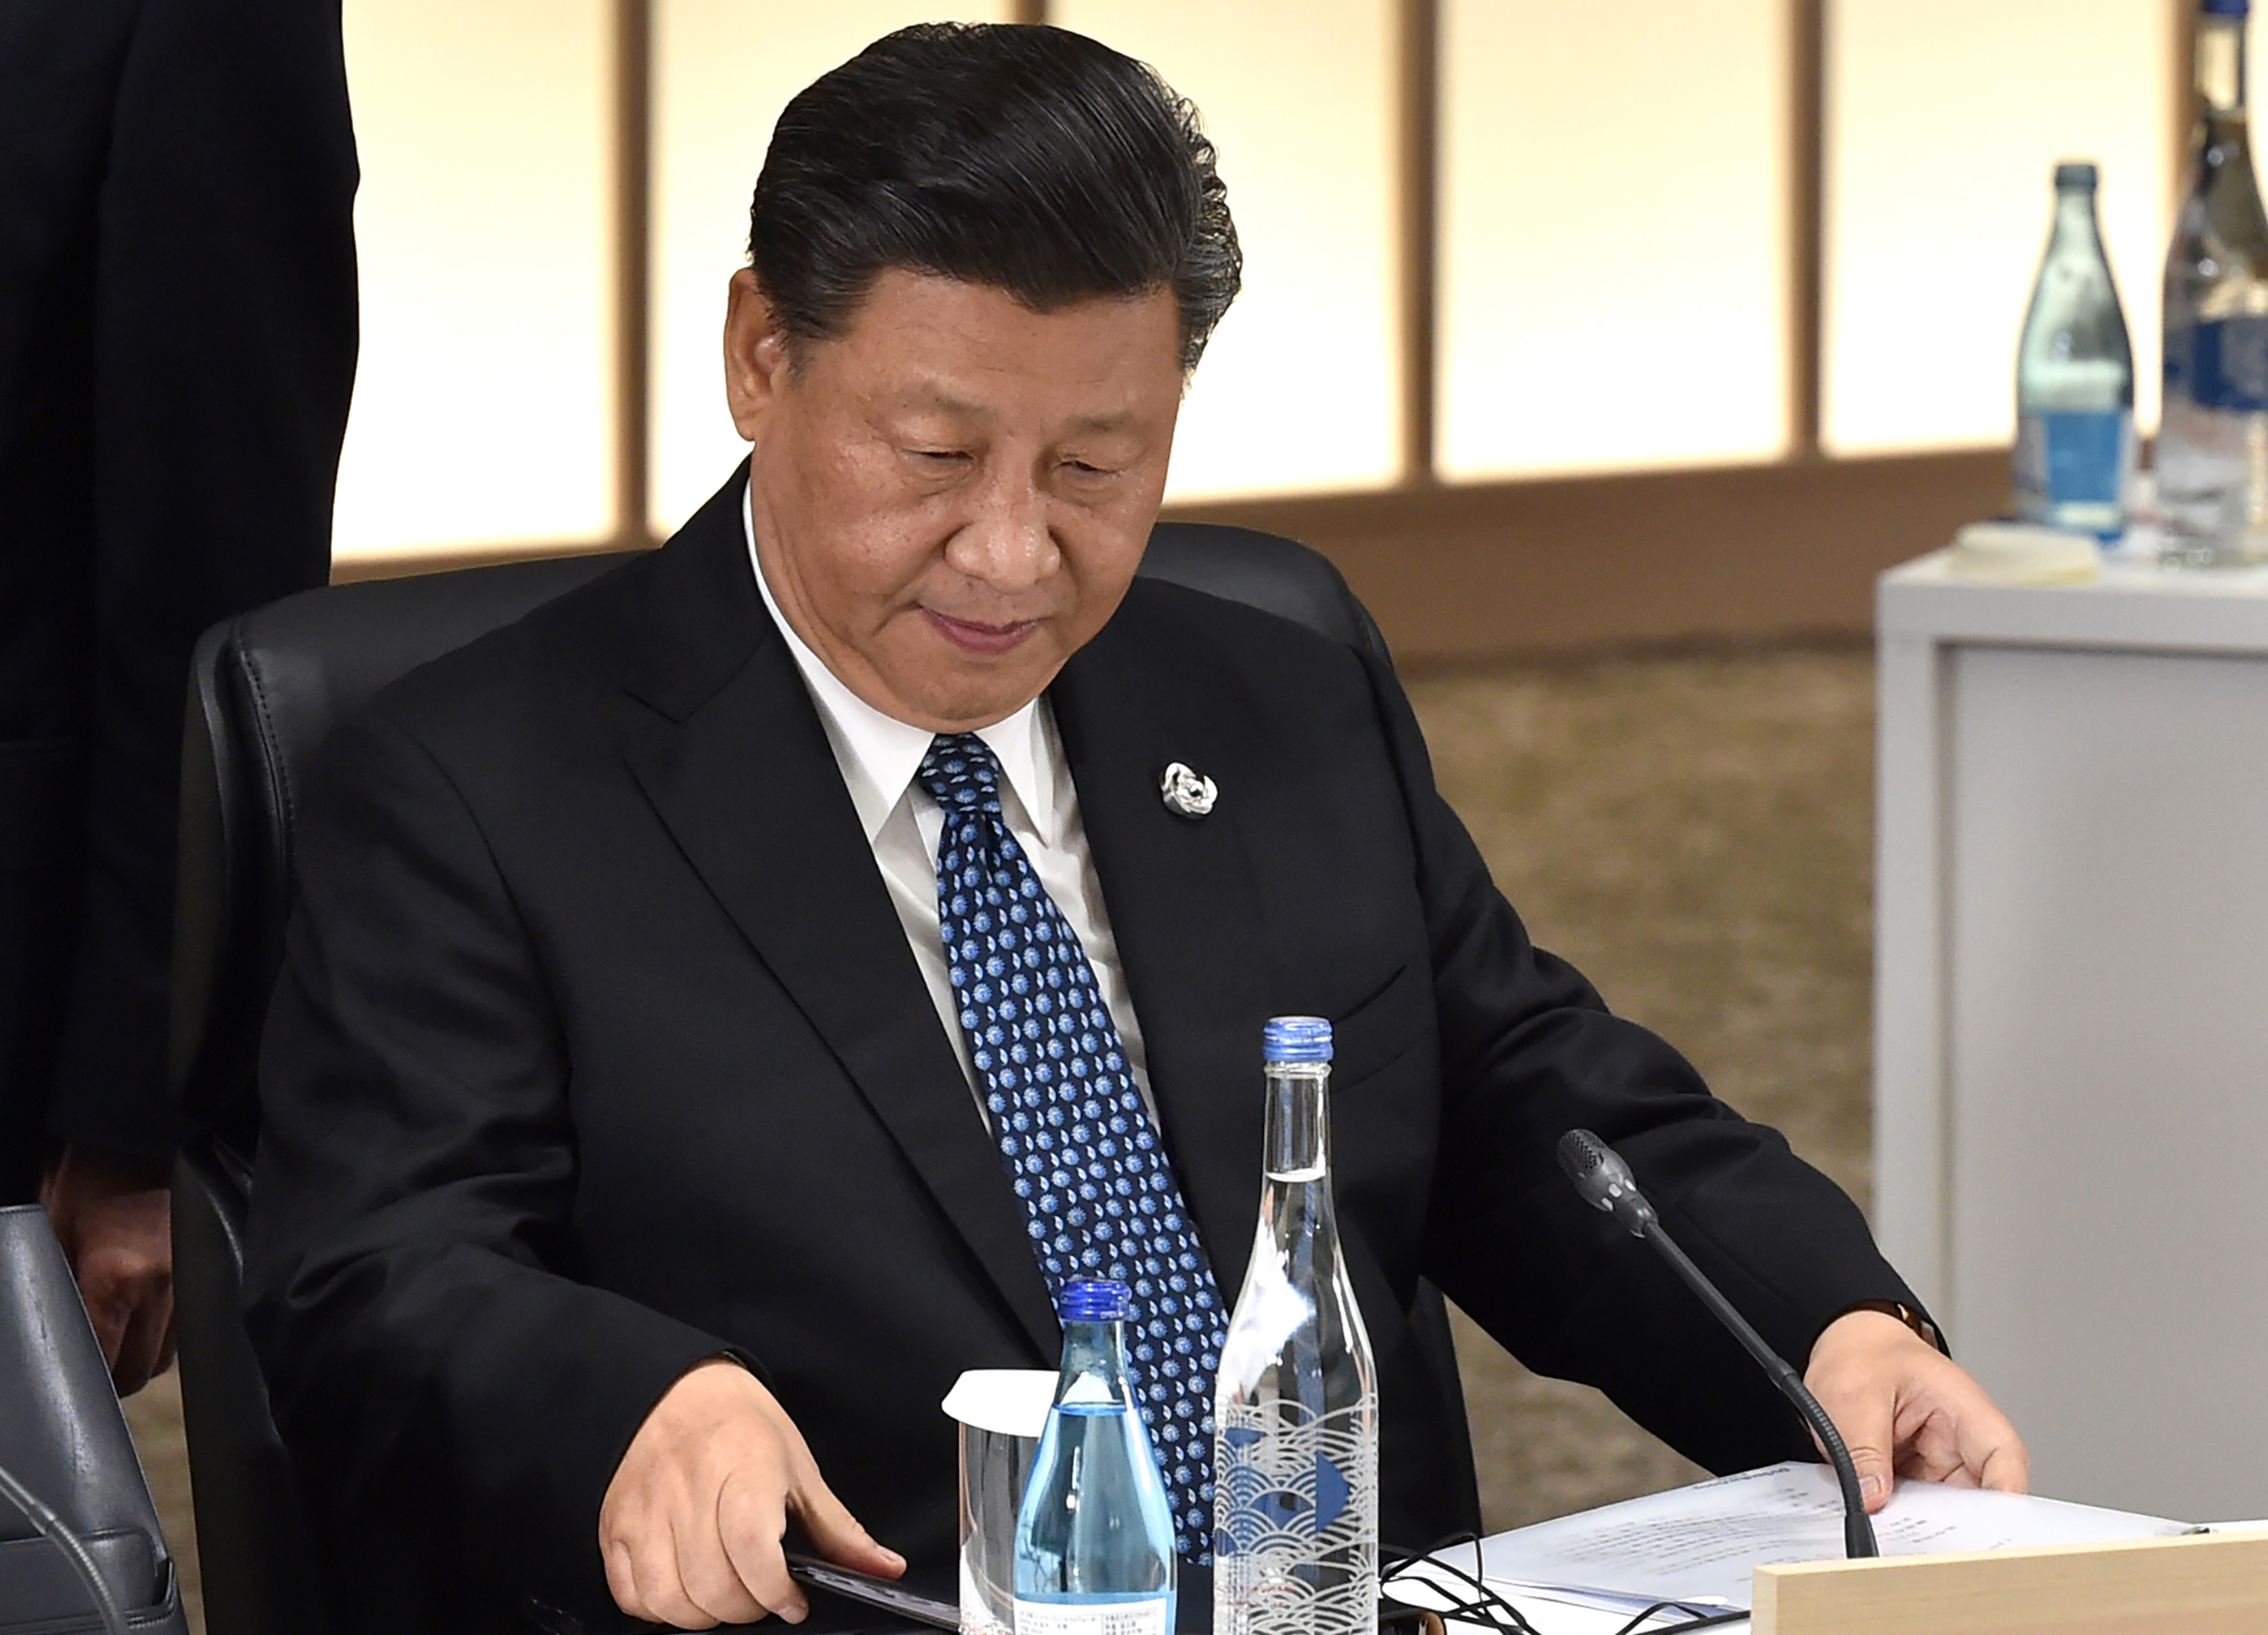 Chinese President Xi Jinping attends session 3 on women's workforce participation, future of work, and ageing societies during the G20 Summit in Osaka on June 29.